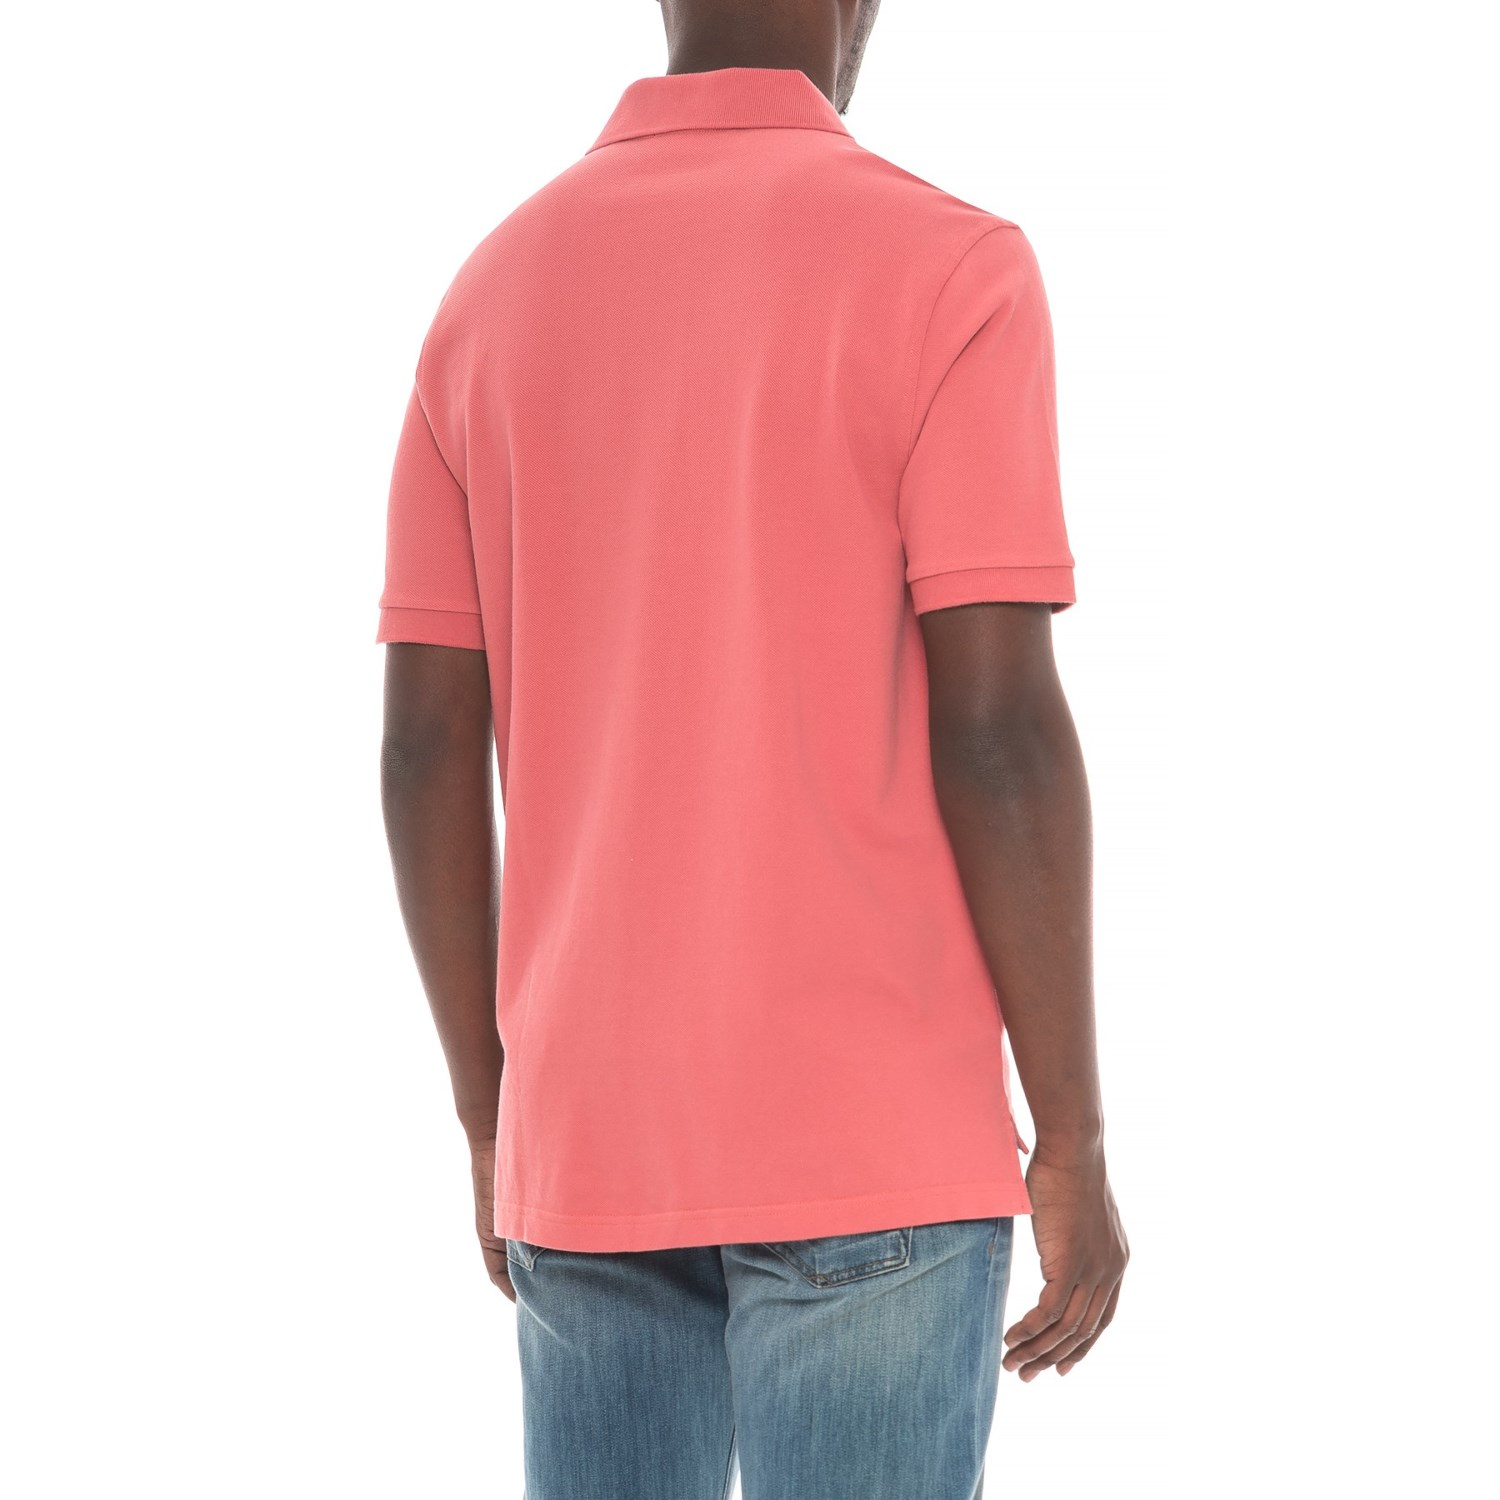 Breakfast Creek Cotton-Pique Polo Shirt - Short Sleeve (For Men)